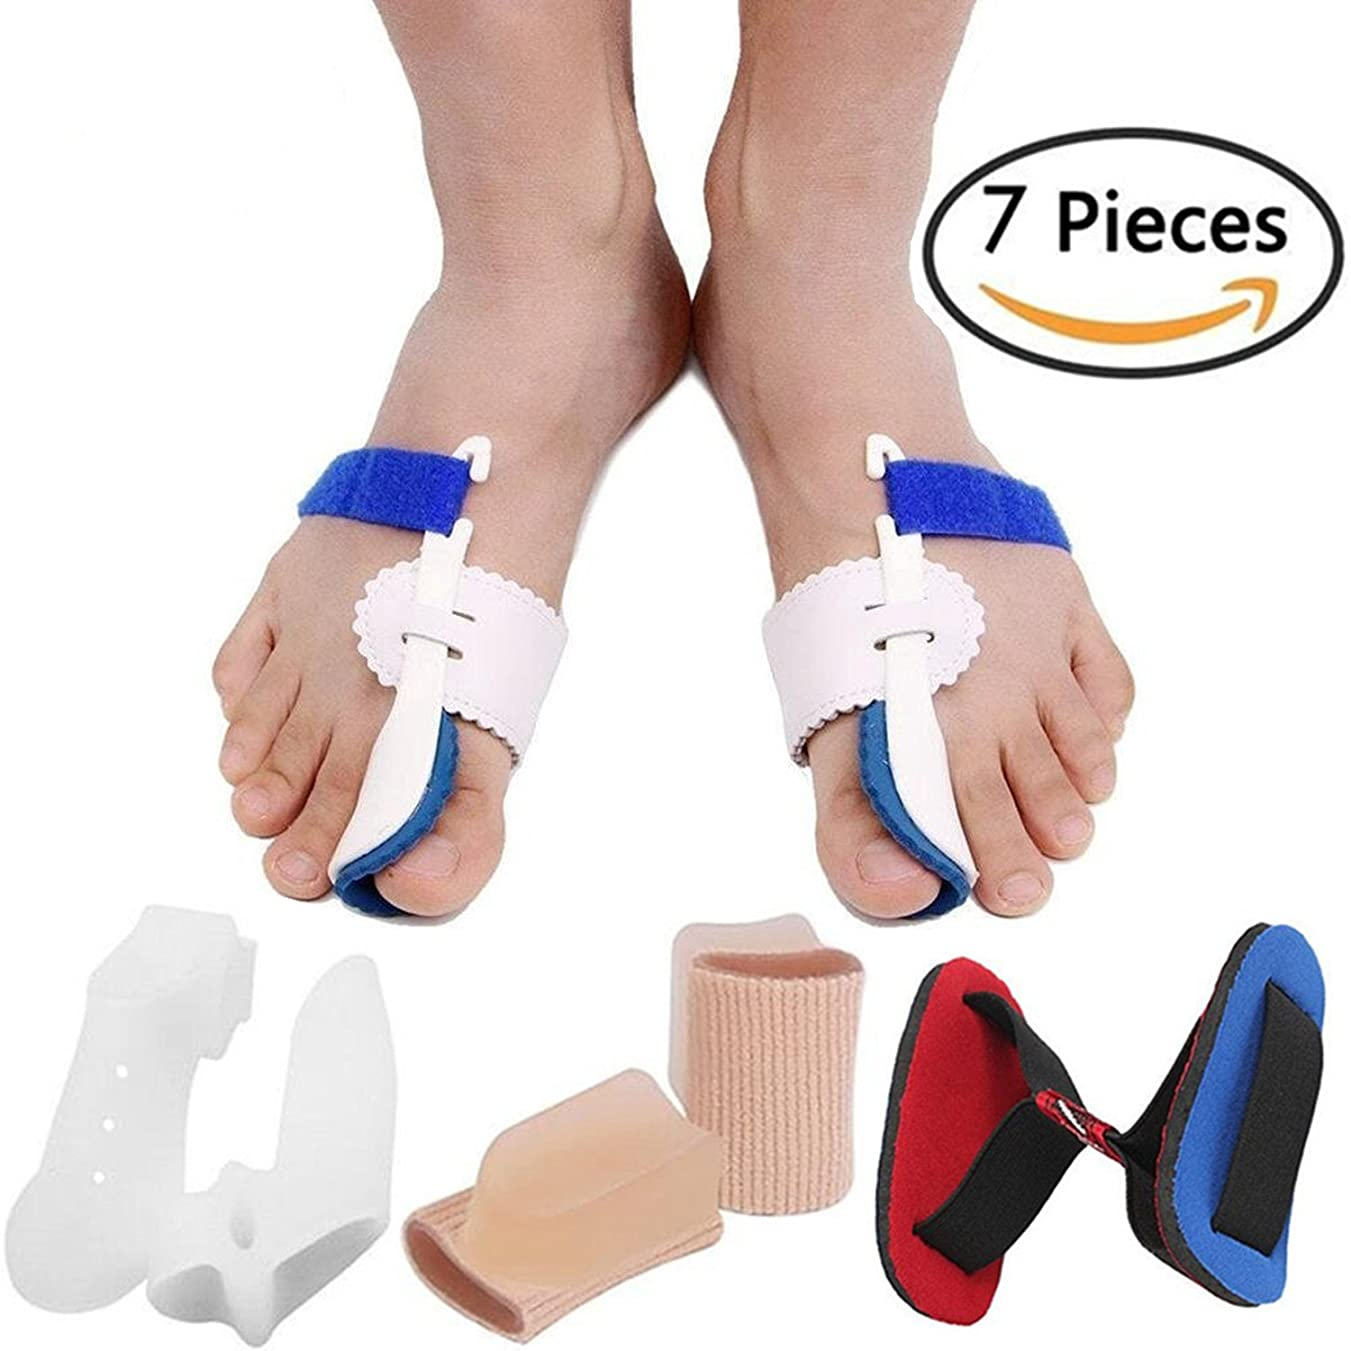 水陸両用タフ超えるBunion Corrector Bunion Relief Protector Sleeves Kit, Big Toe Corrector Straightener Separator Treat Pain in Hallux Valgus, Big Toe Joint, Hammer Toe, Splint Aid Surgery Treatment